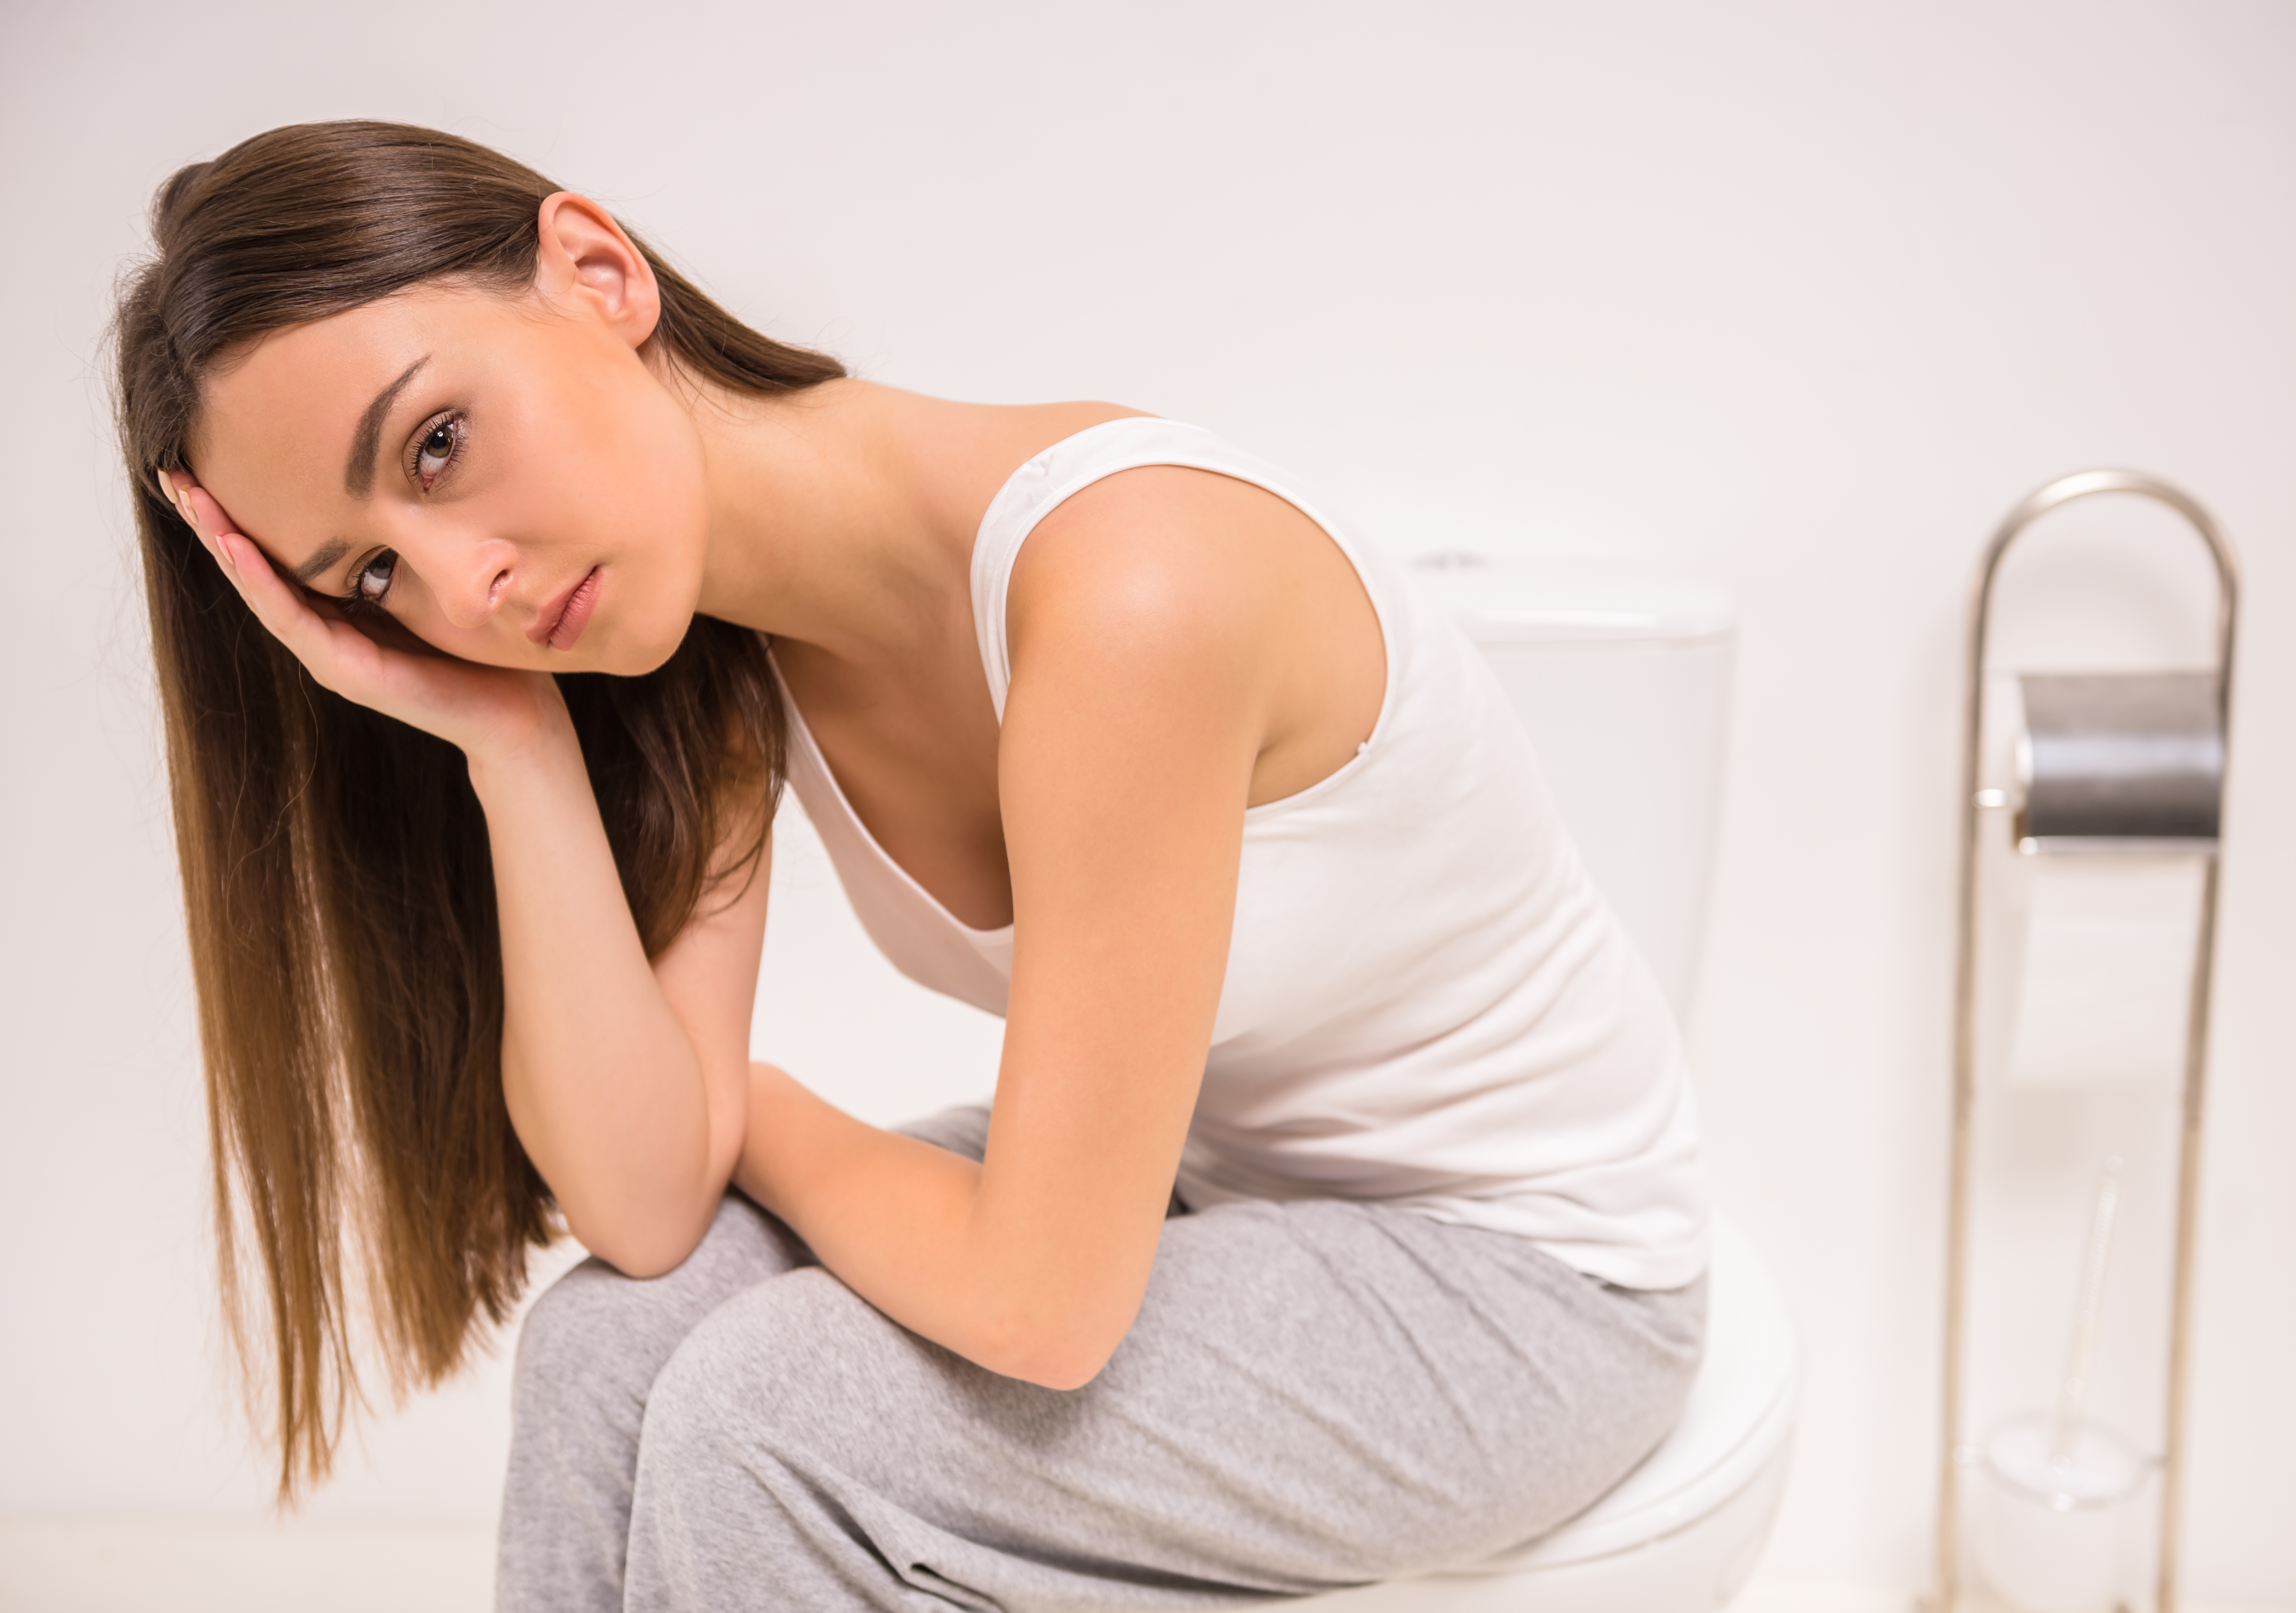 Young woman on toilet, looks unhappy